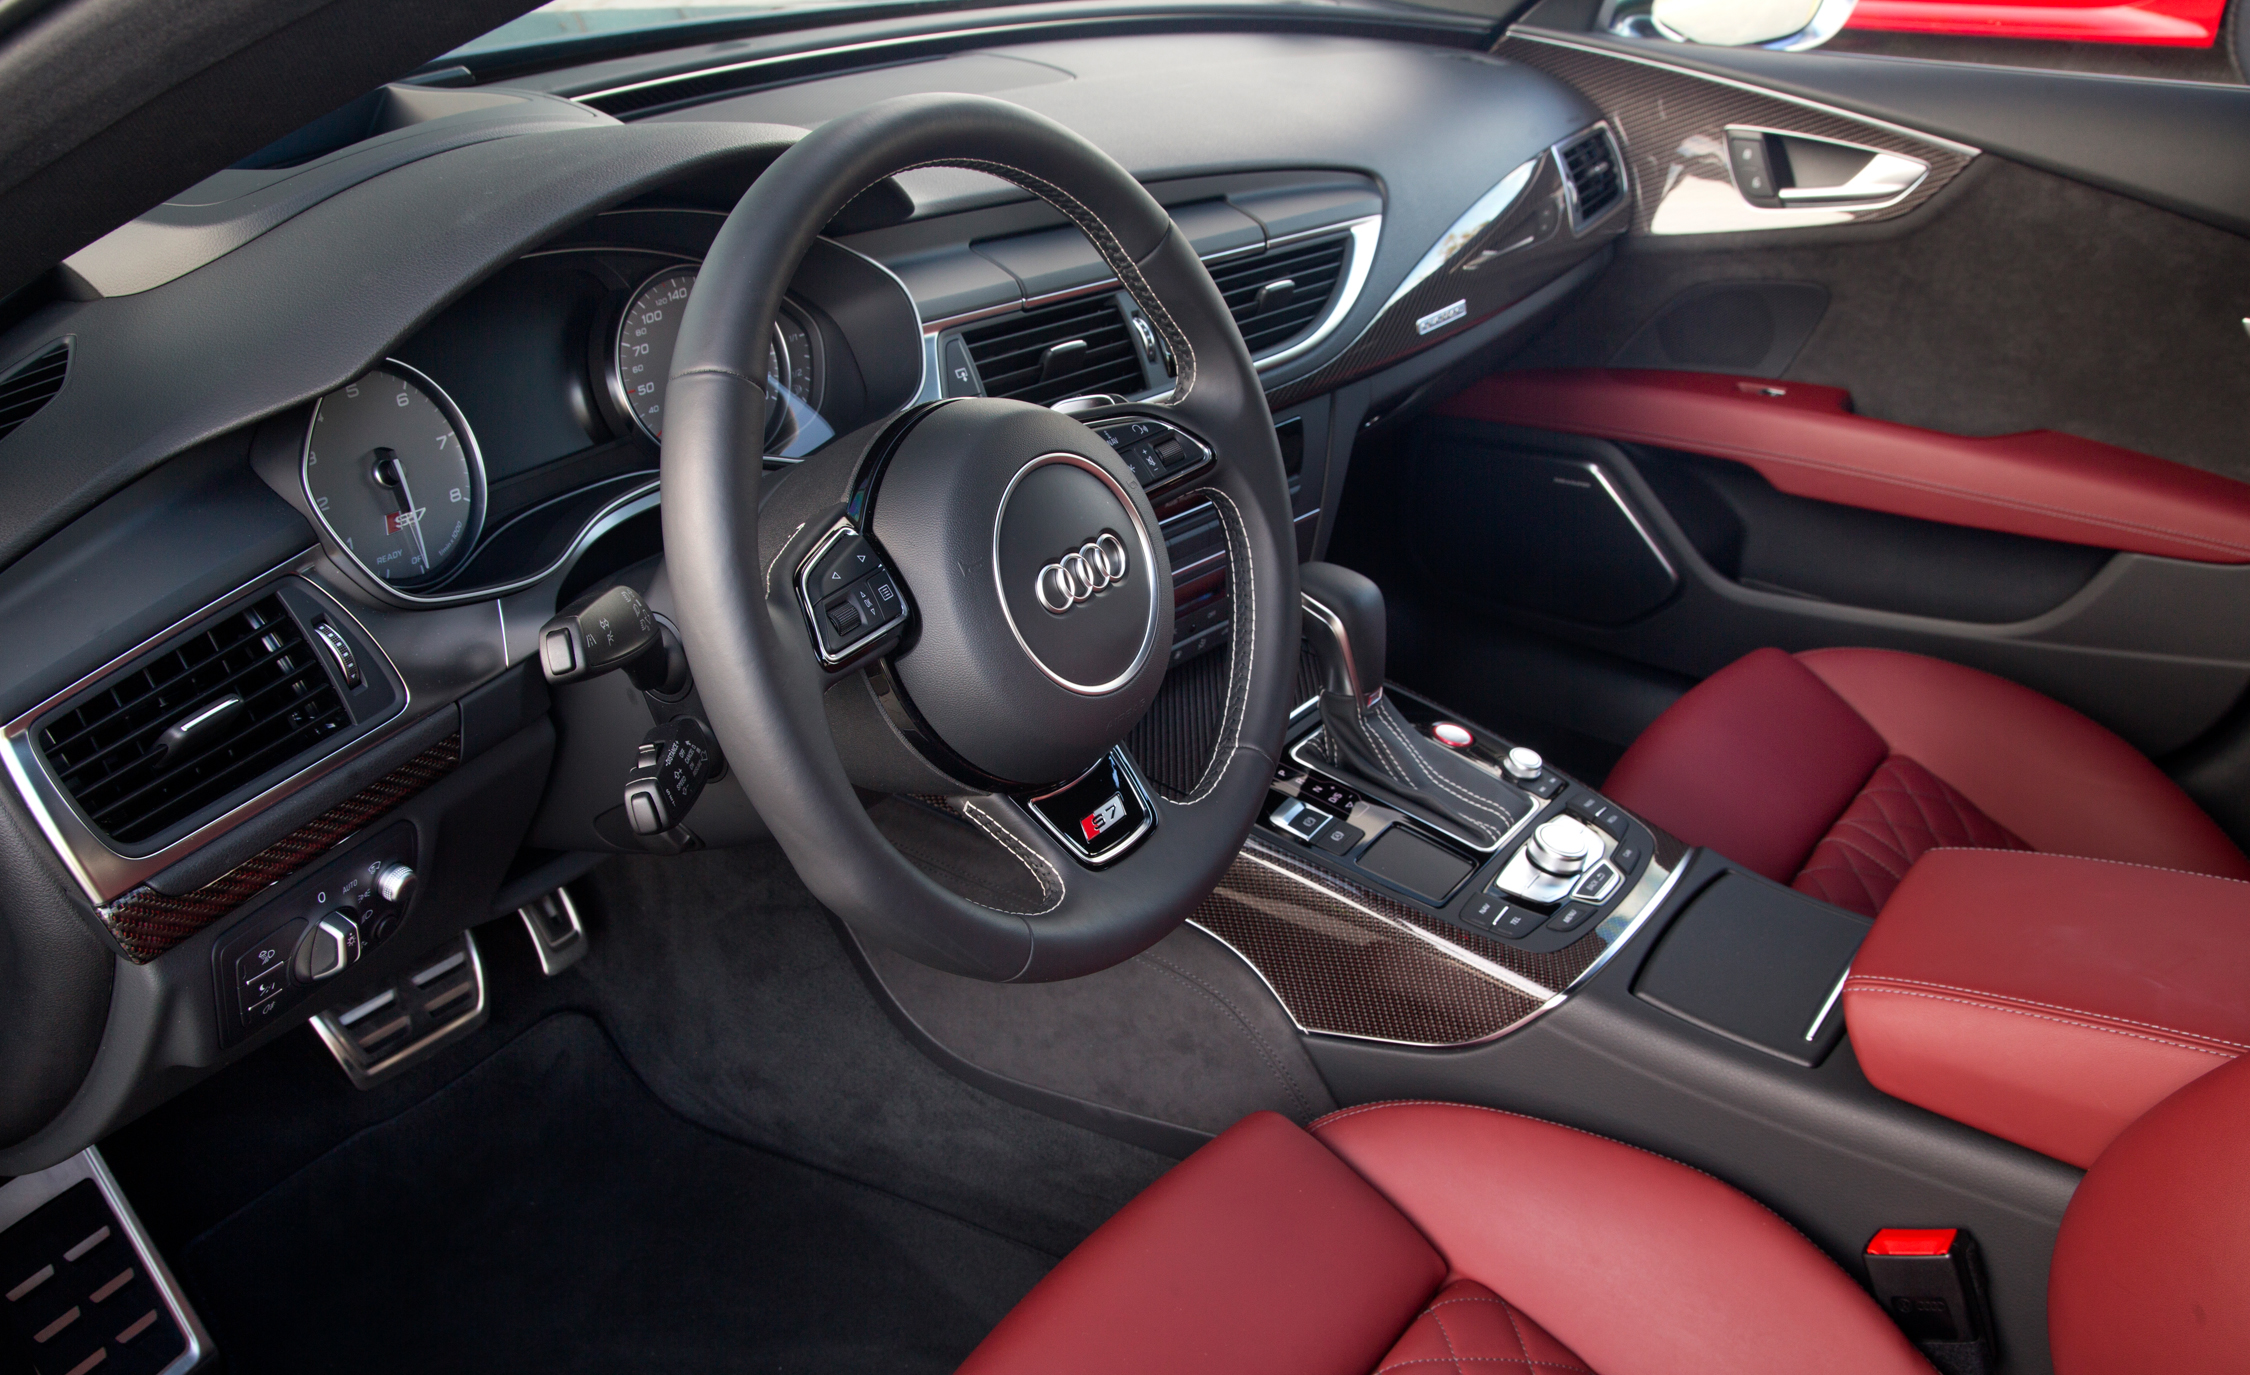 2016 Audi S7 Interior (Photo 13 of 30)